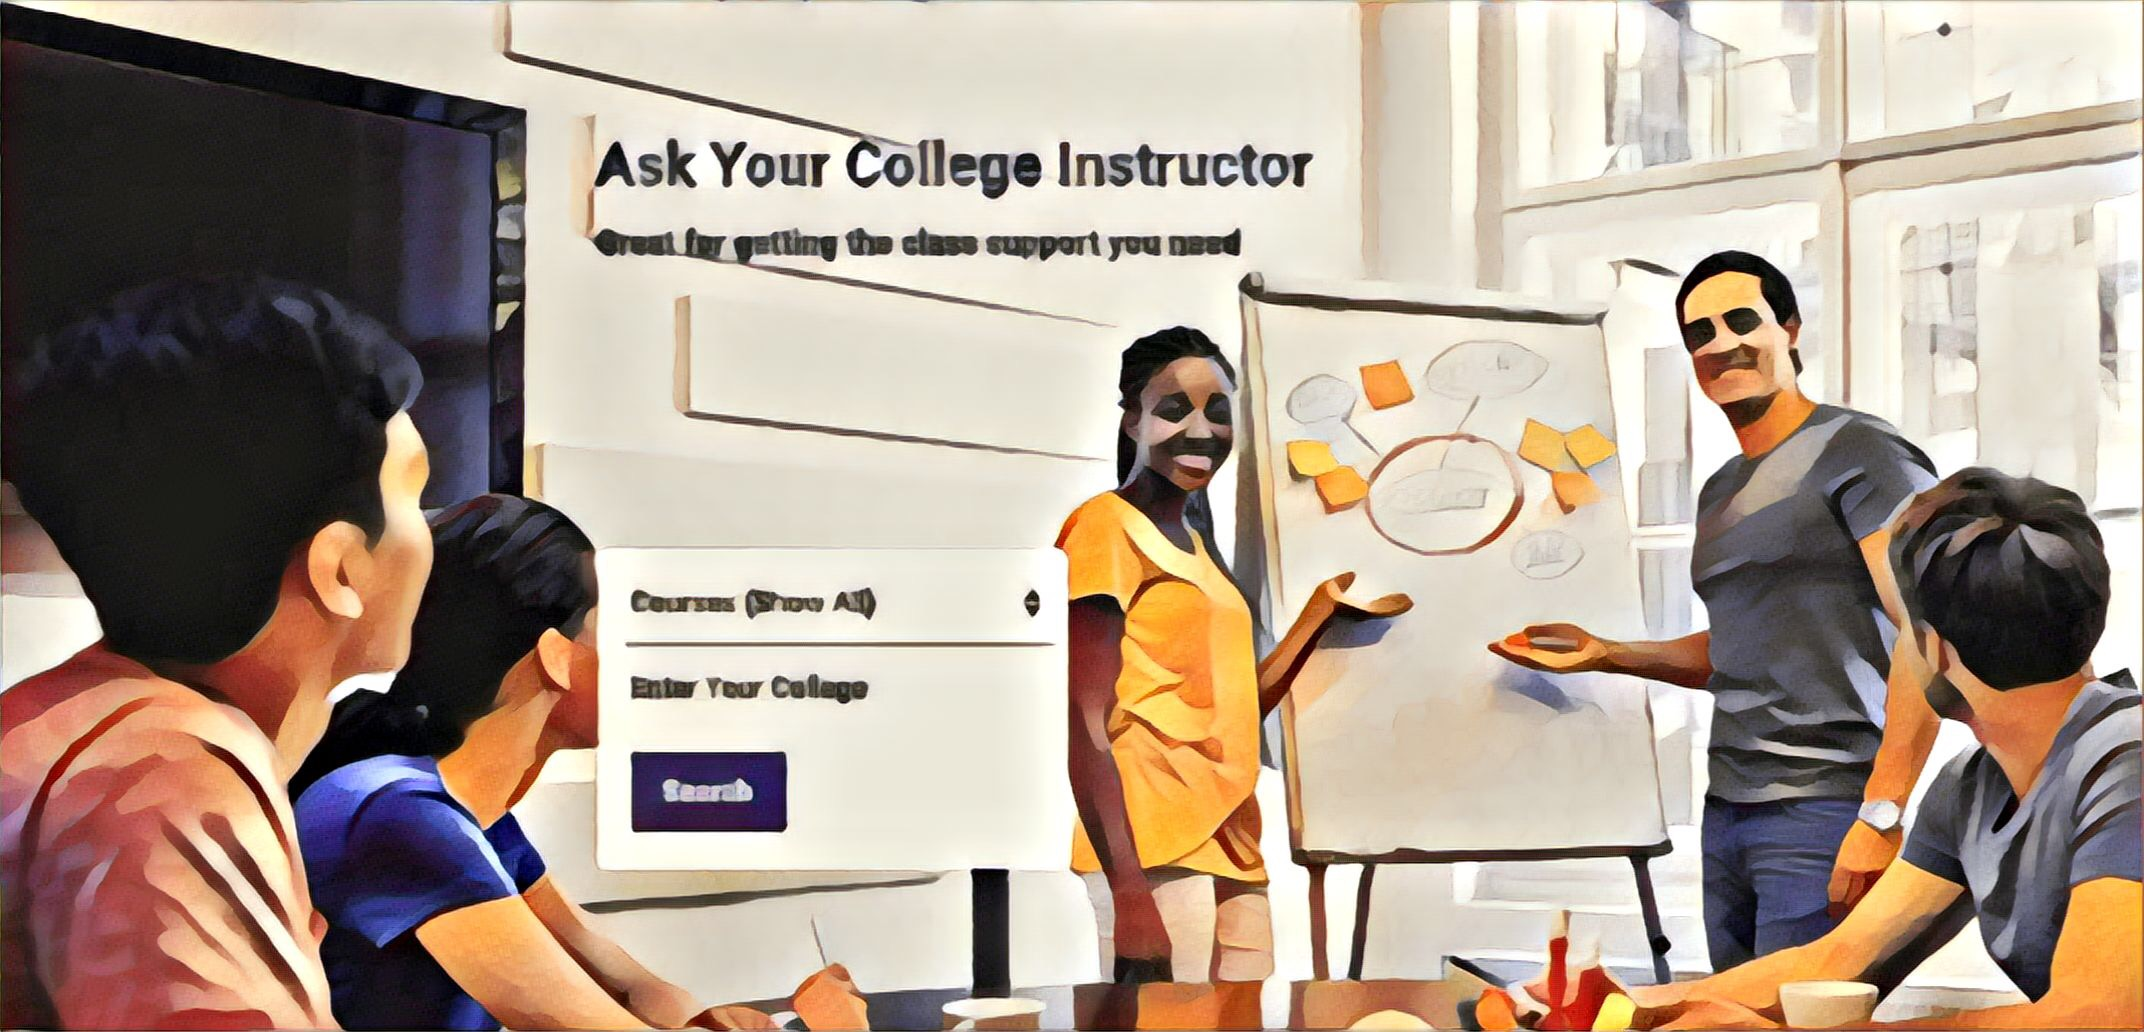 - Tradepal seeks to bridge the gap between students and existing academic support resources on campus. We aim at making those resources available to students by giving them remote access to their student learning center tutors and their instructors' office hours anytime anywhere.